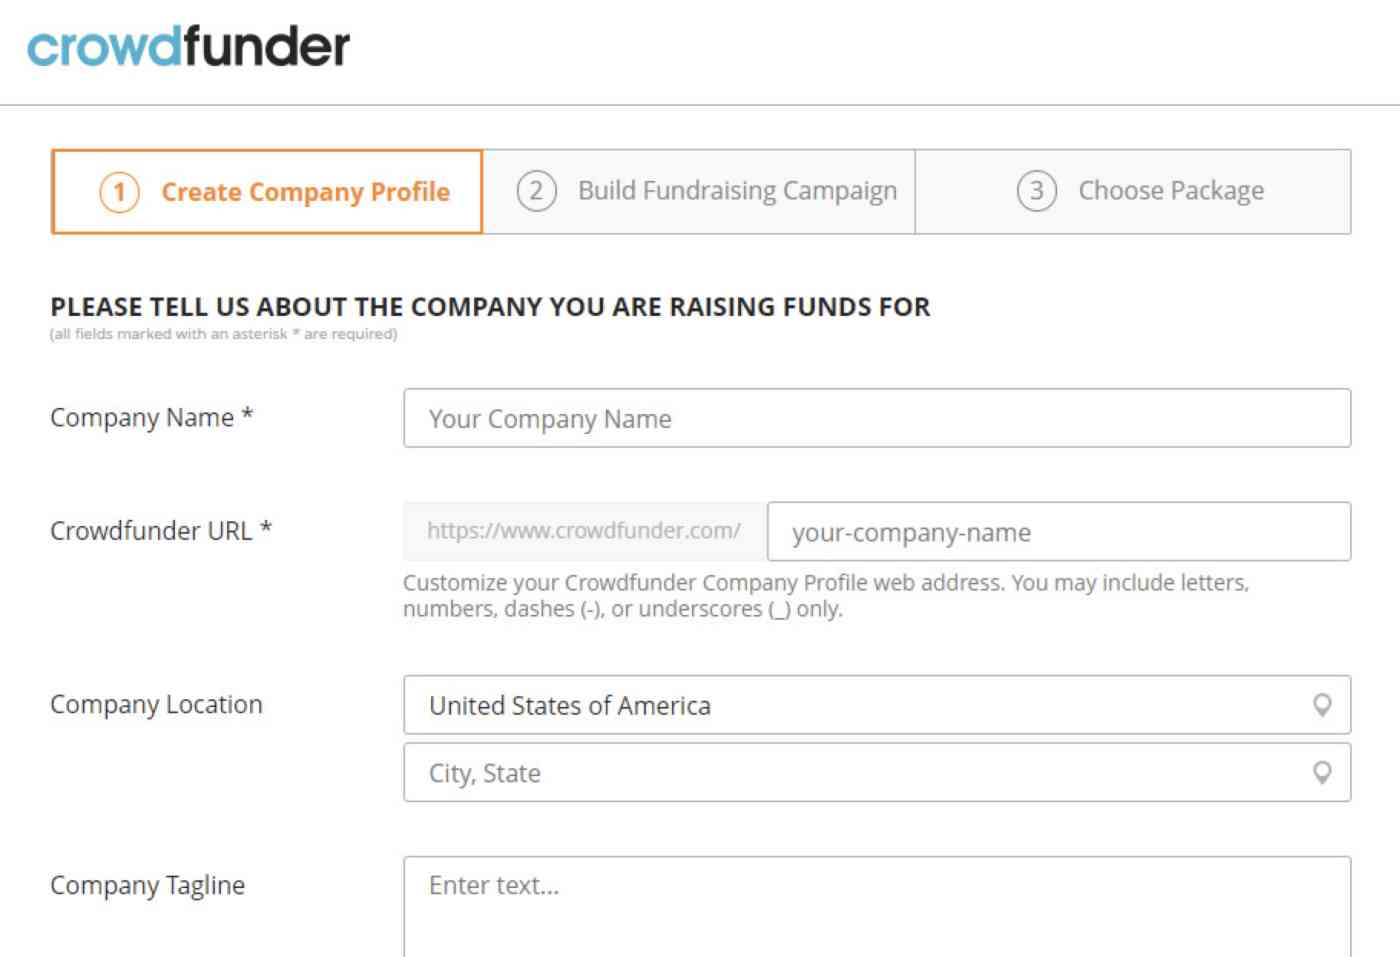 Getting started with Crowdfunder